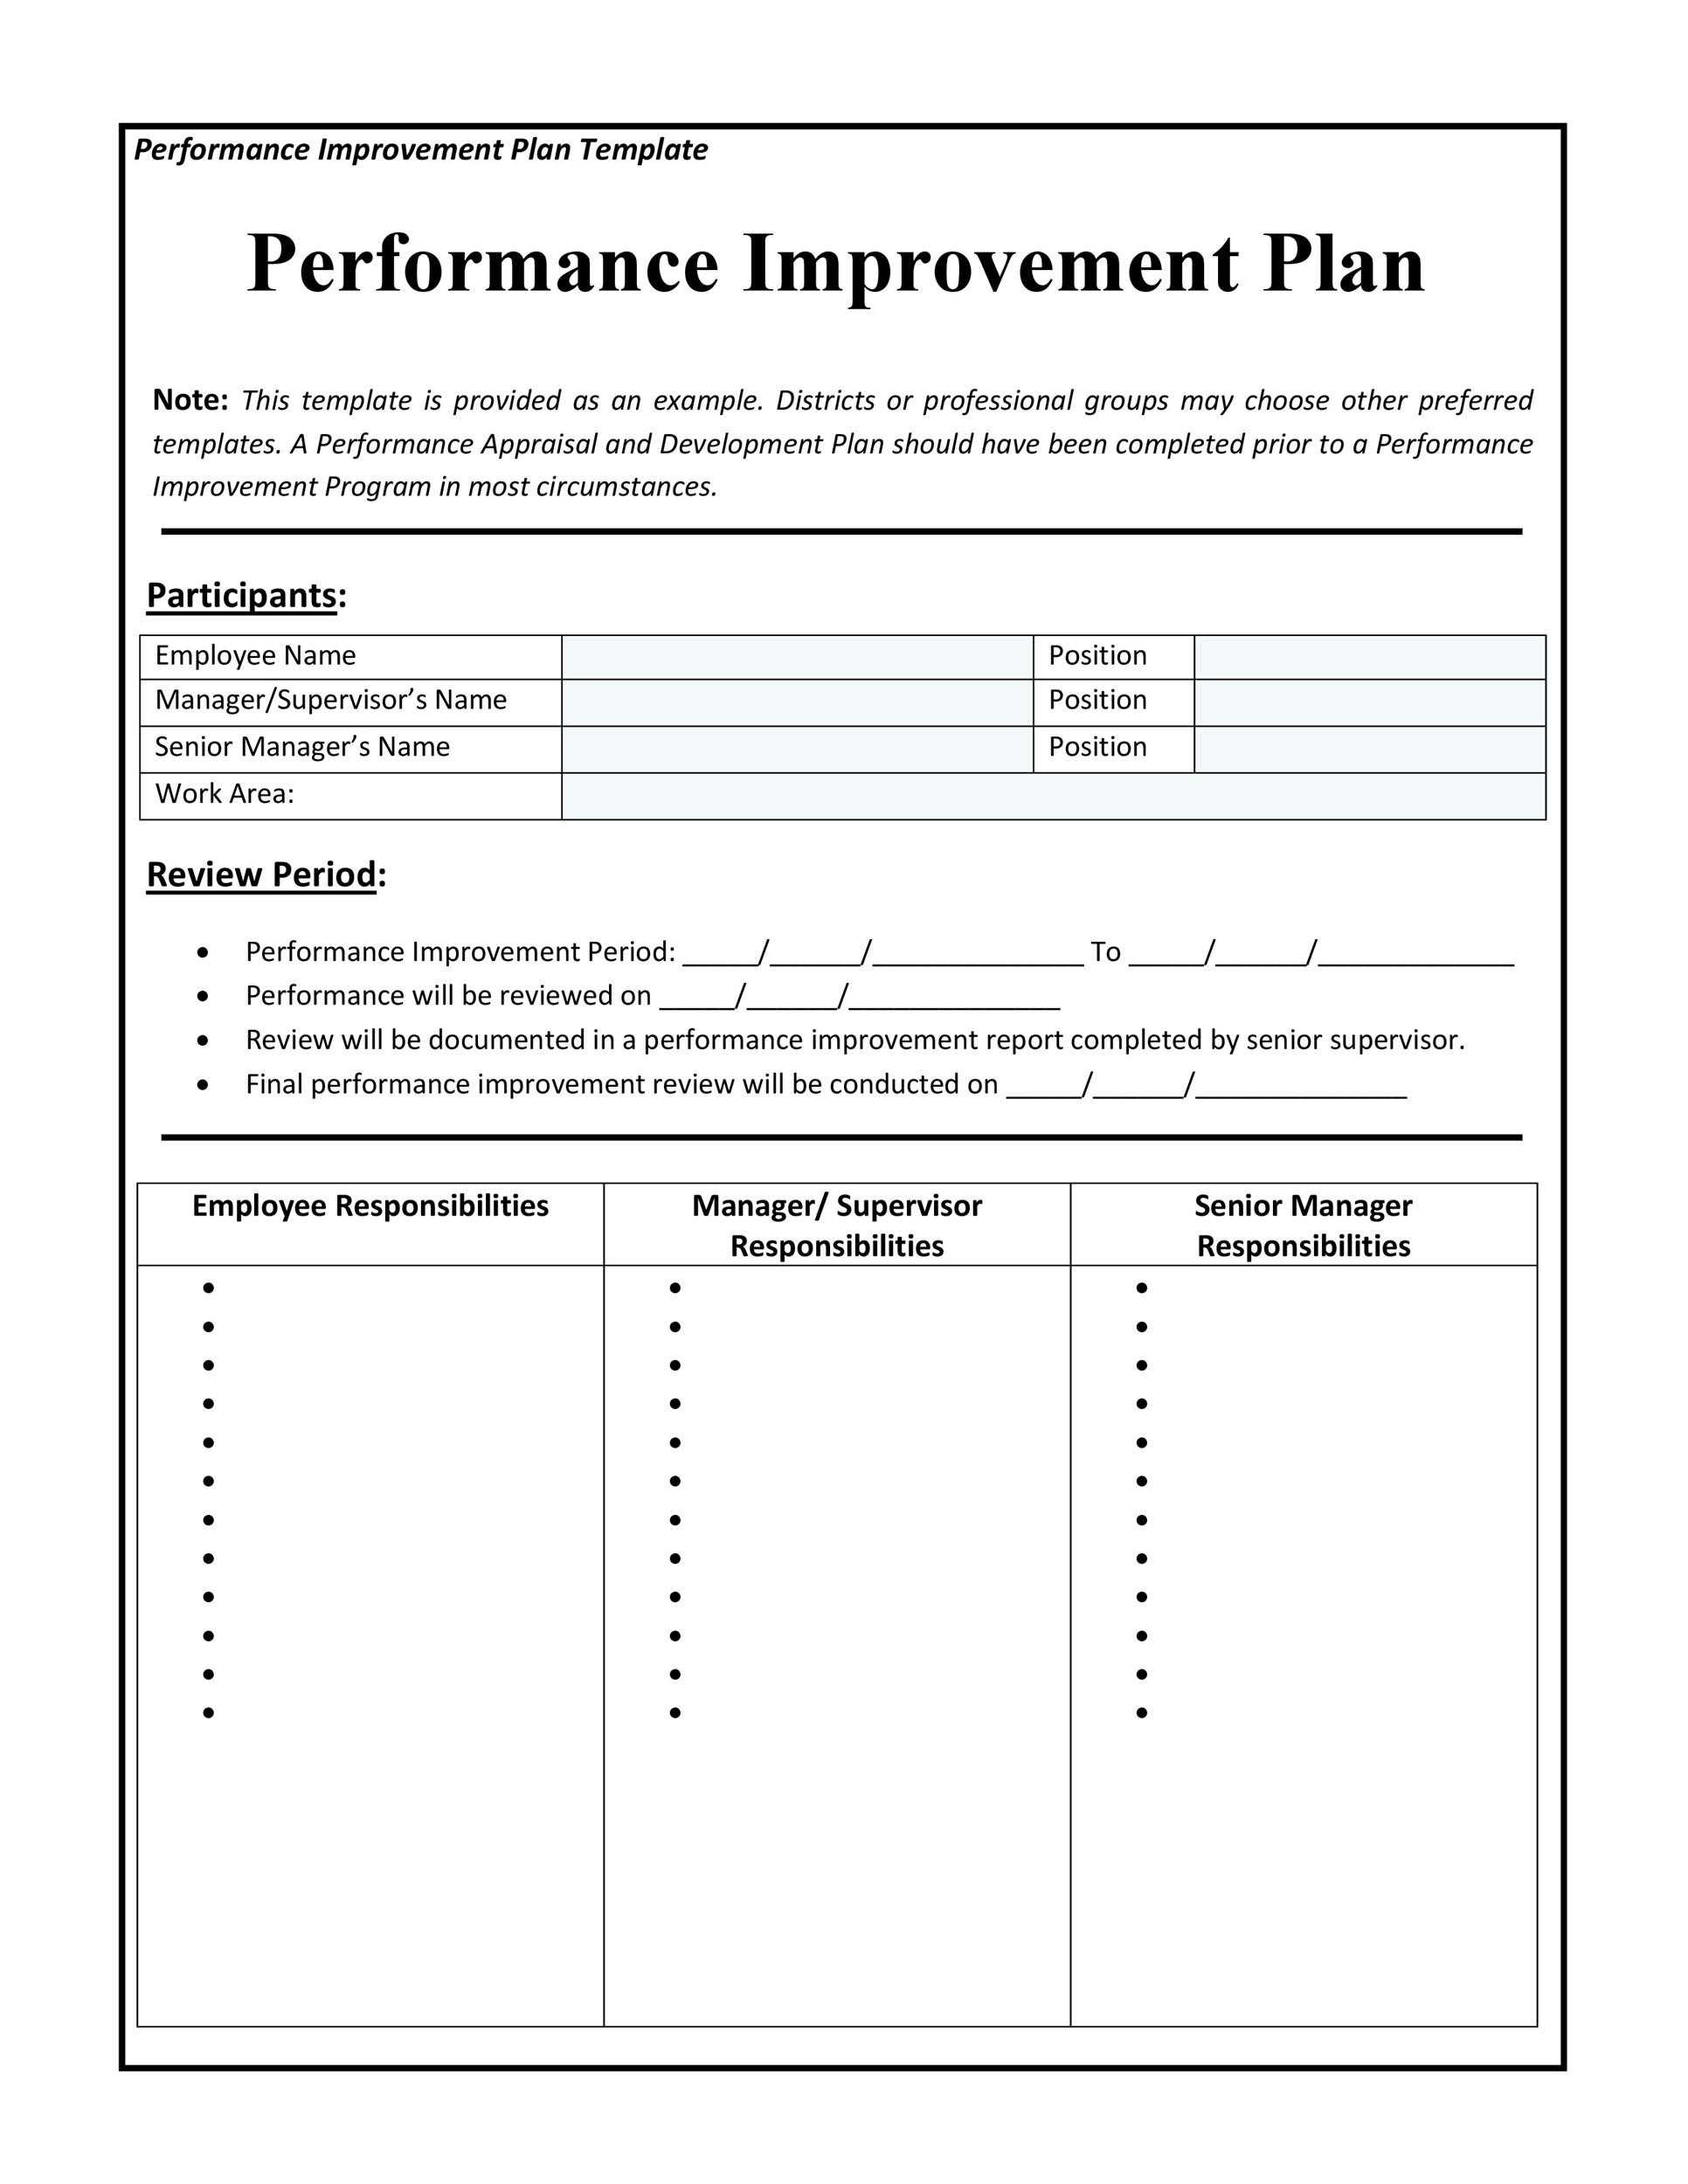 performance improvement plan templates examples performance improvement plan examples